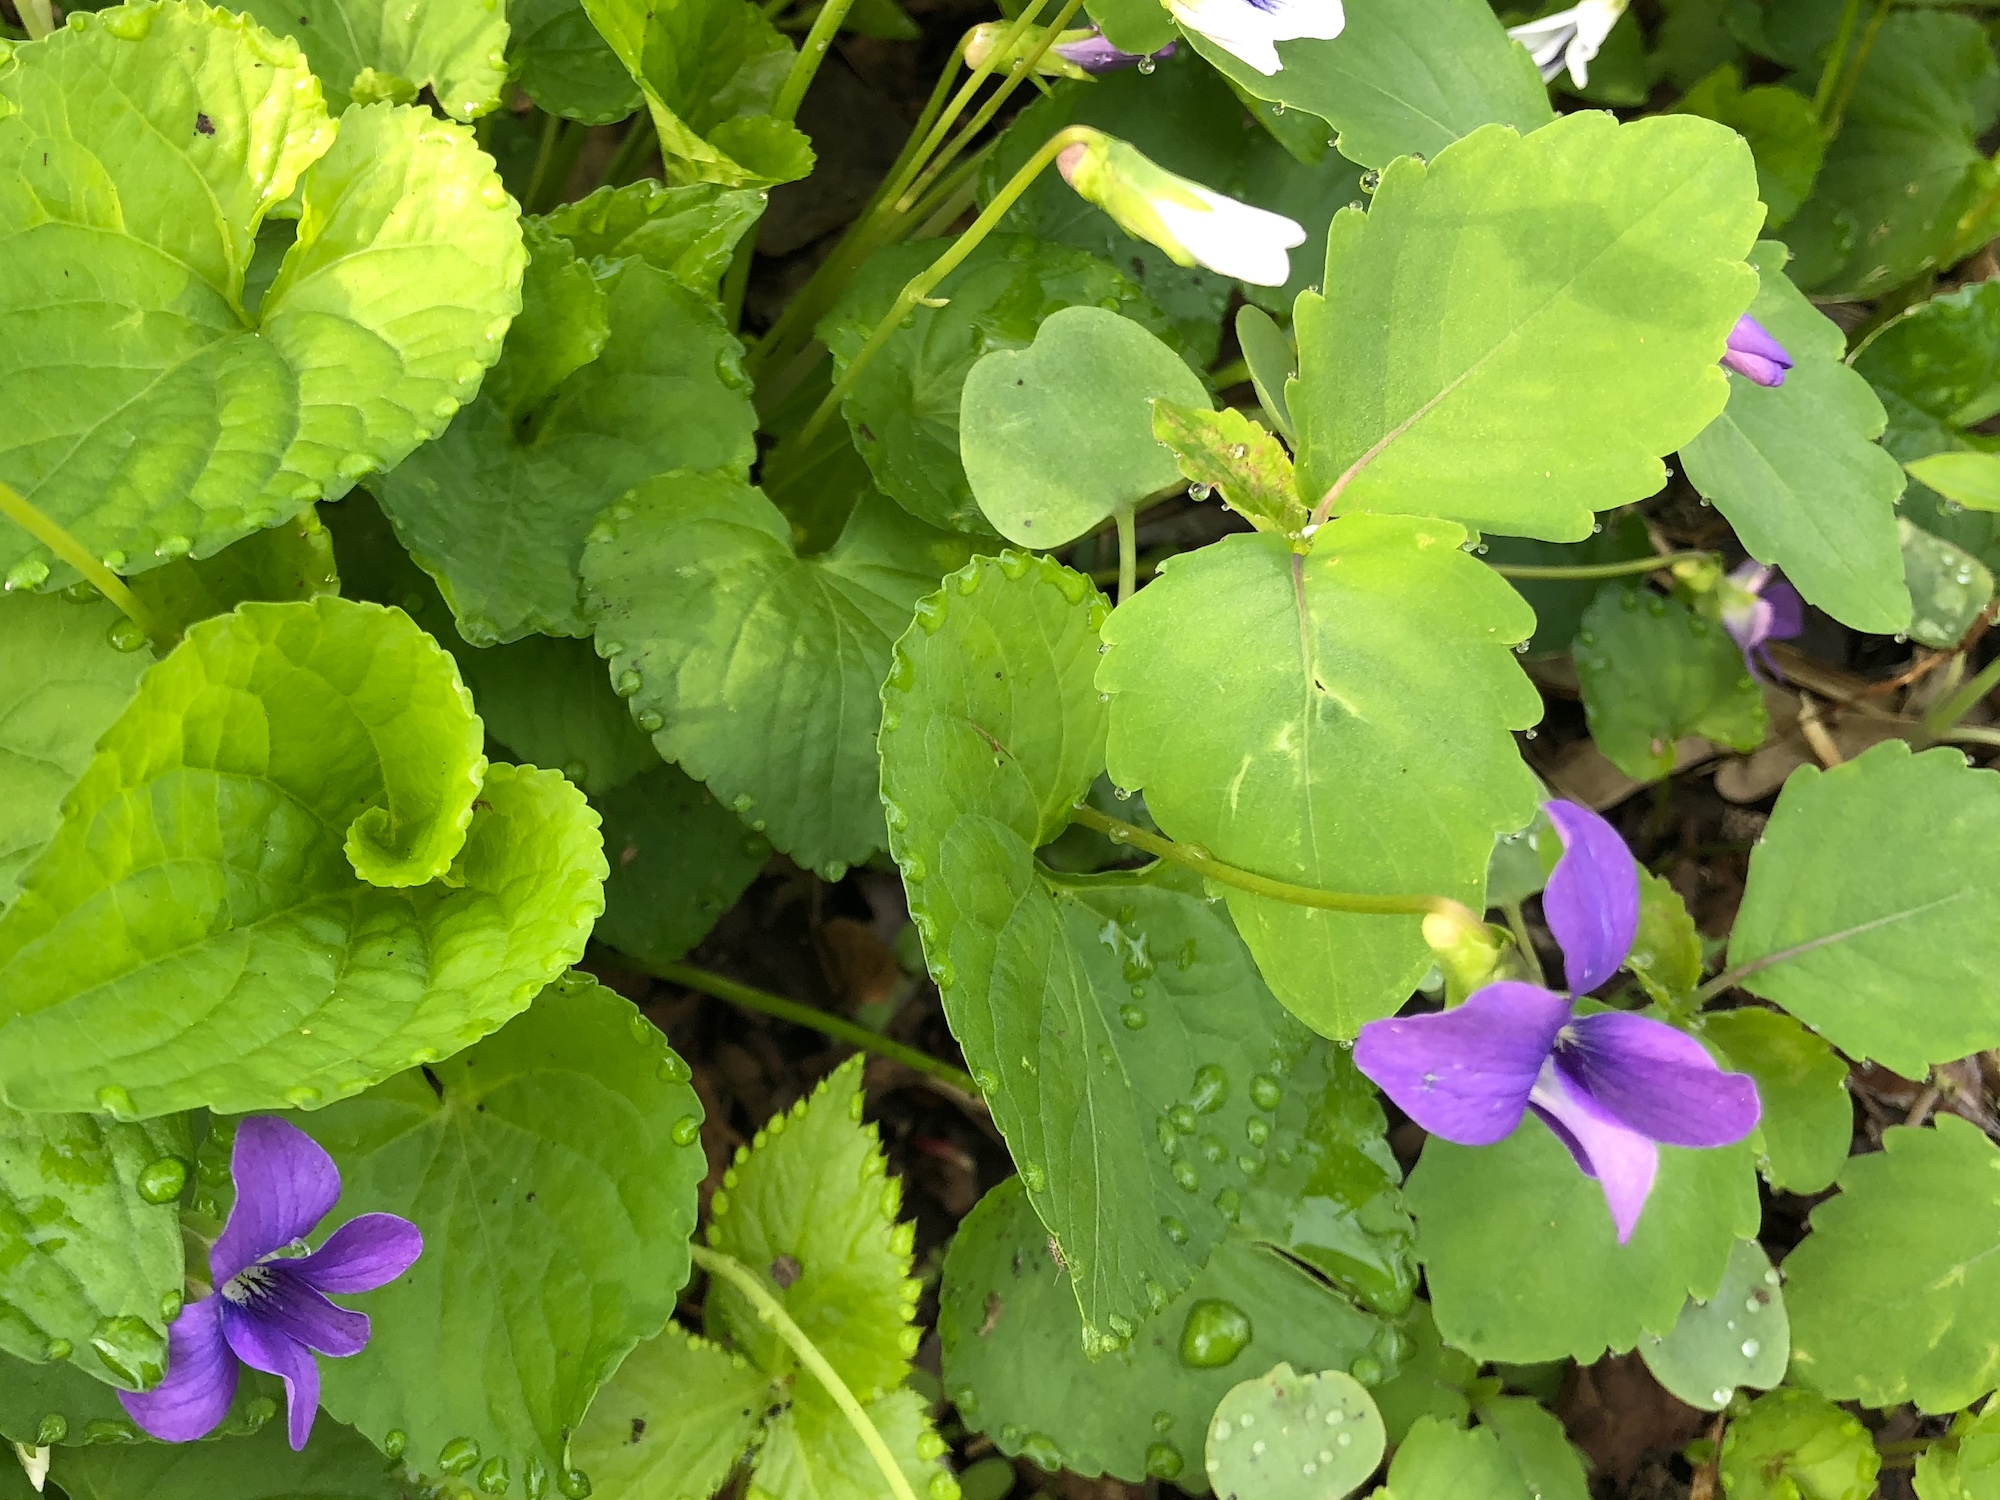 Wood Violets near the Duck Pond on May 15, 2018.